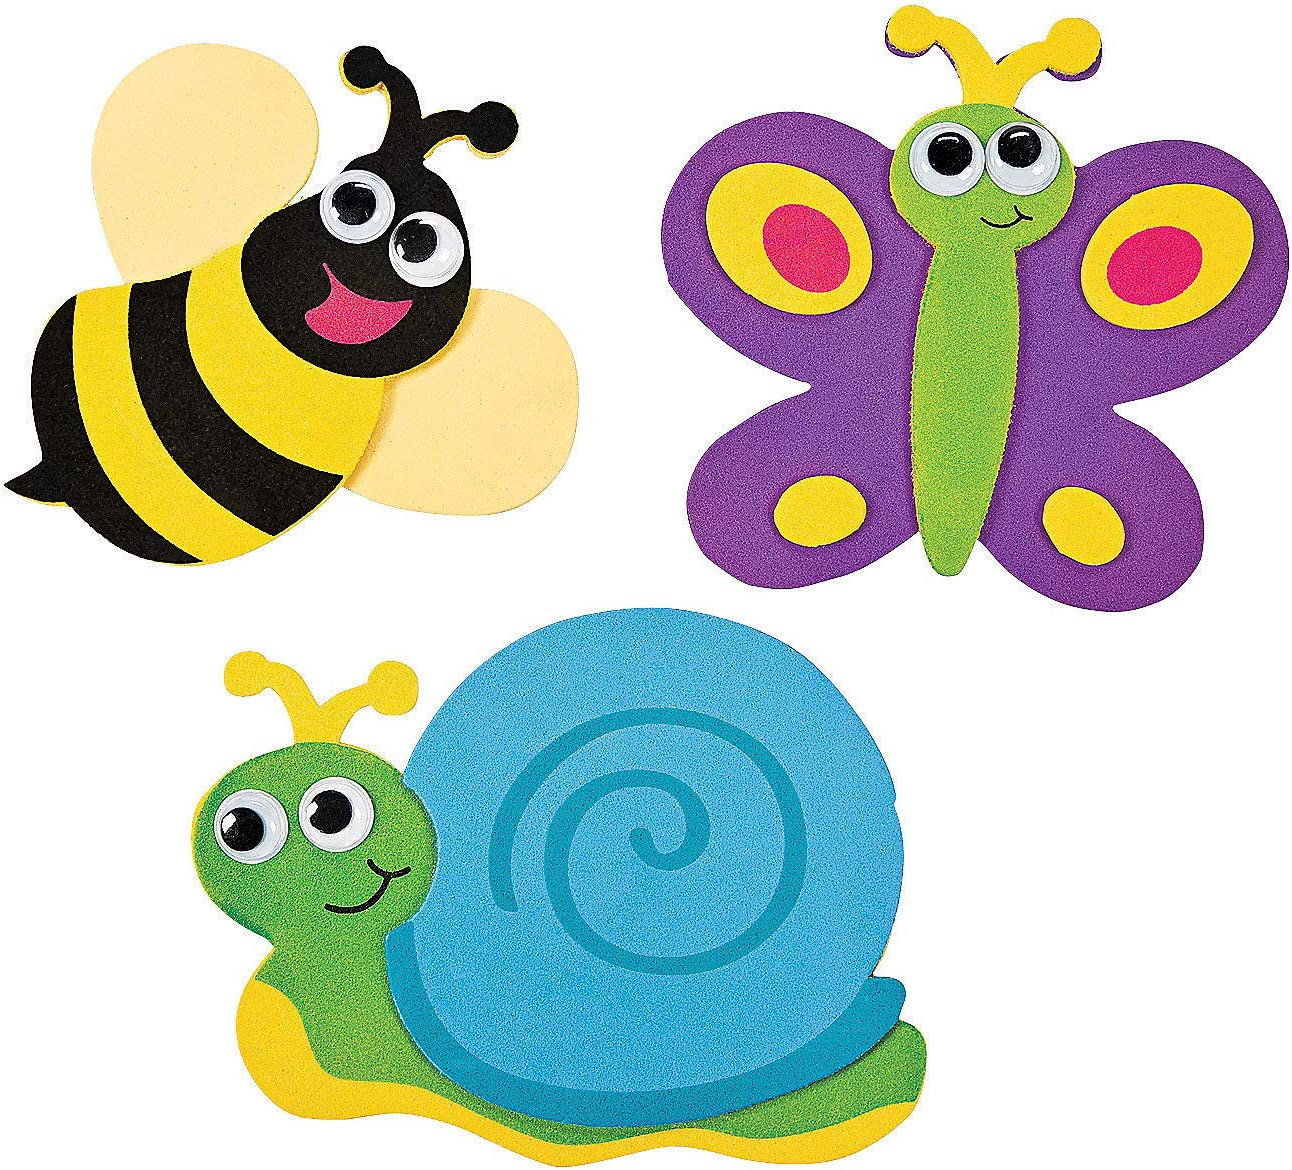 Bug Foam Magnet Ck - Crafts for Kids and Fun Home Activities